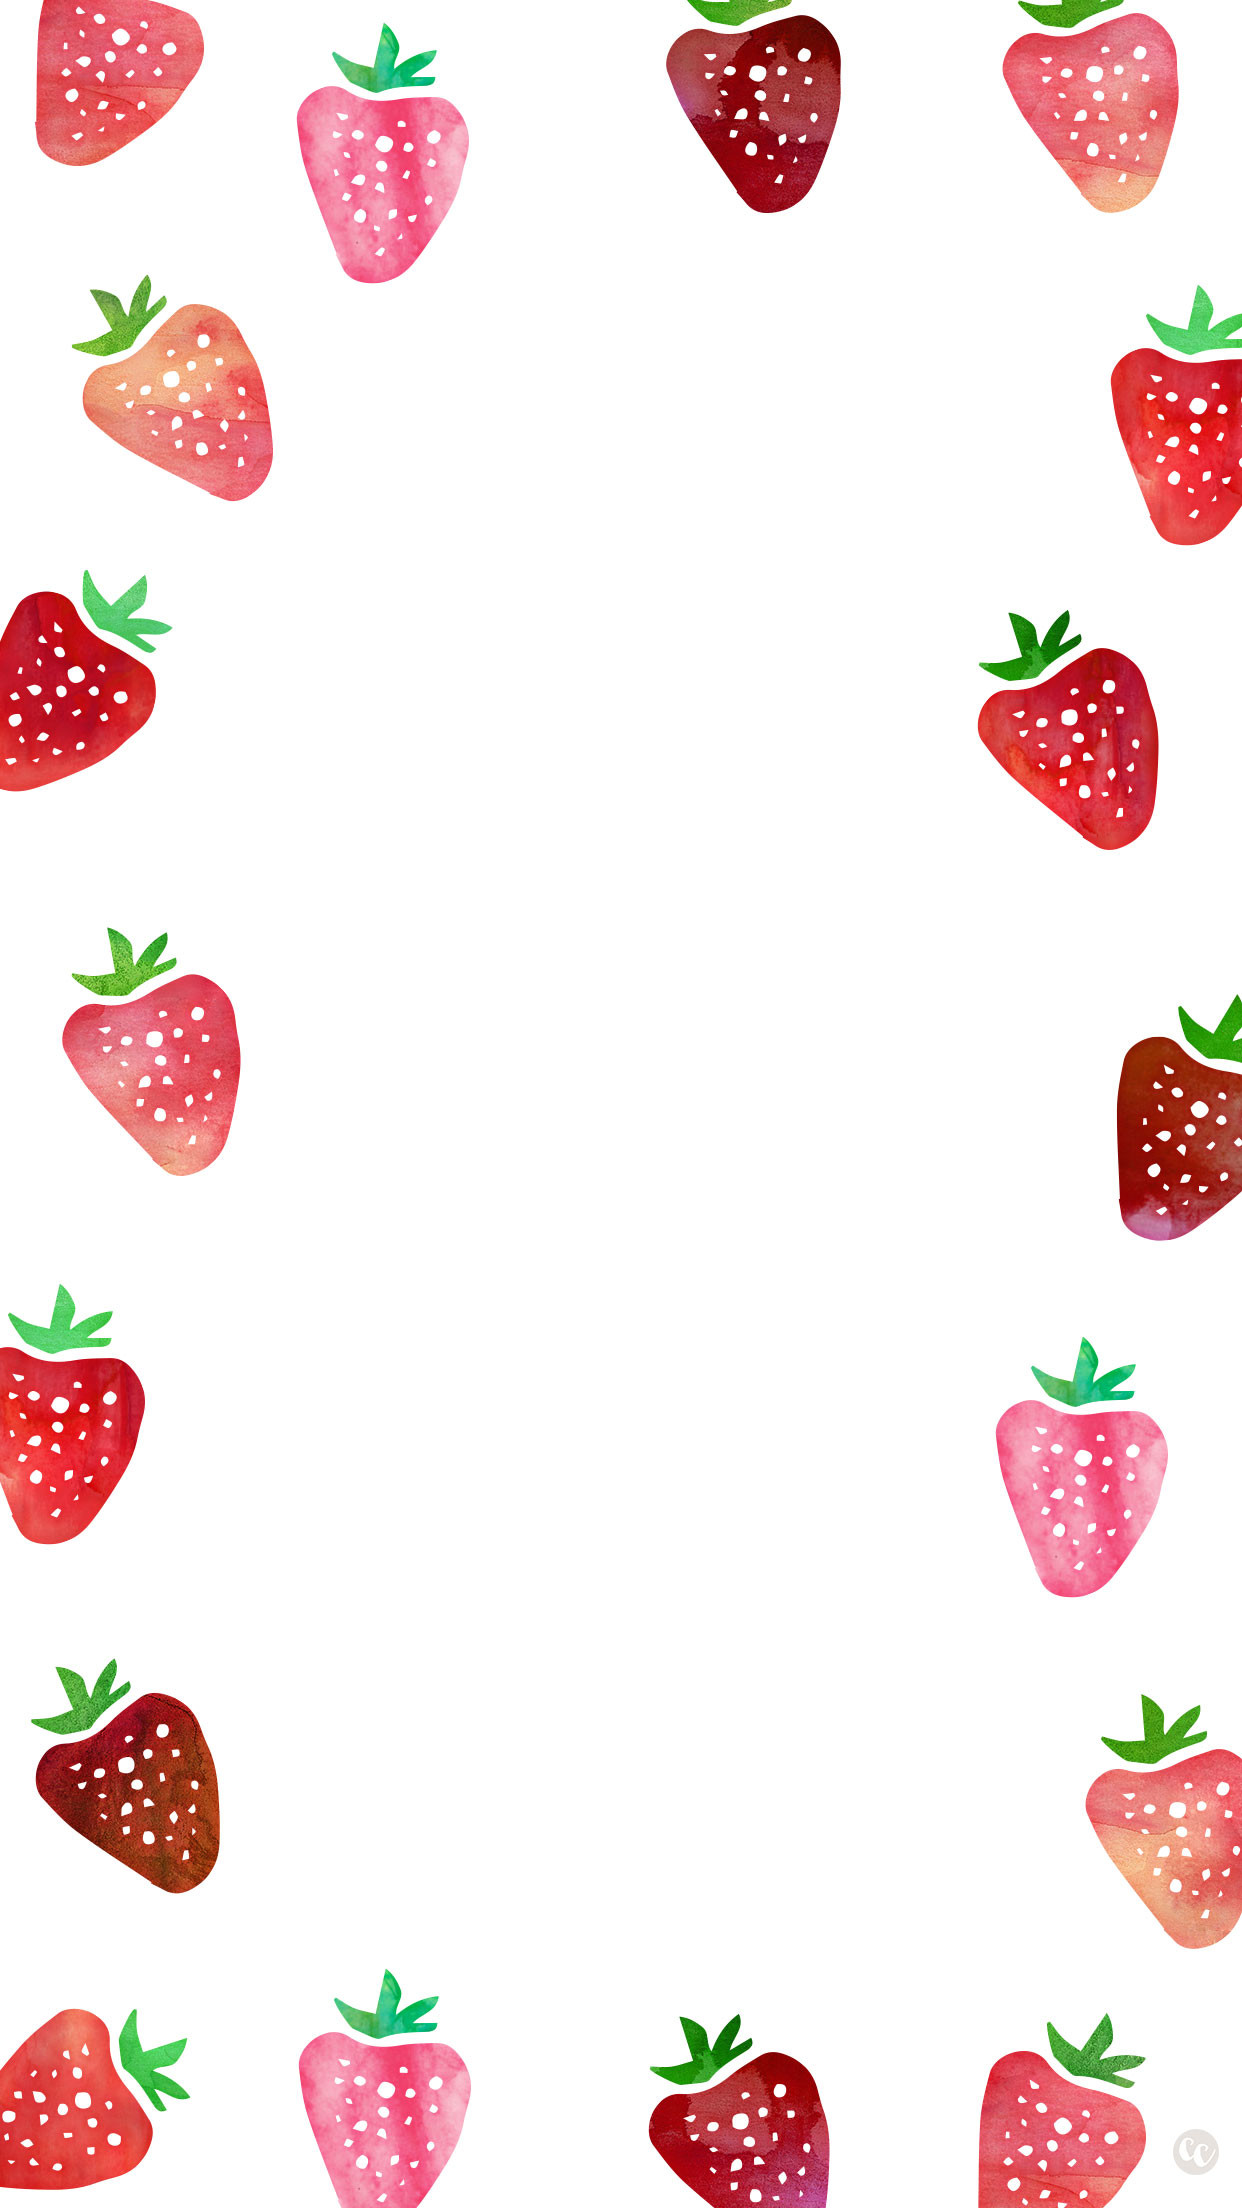 Dress up your smartphone with this cute strawberry wallpaper! Also  available for desktop and iPad